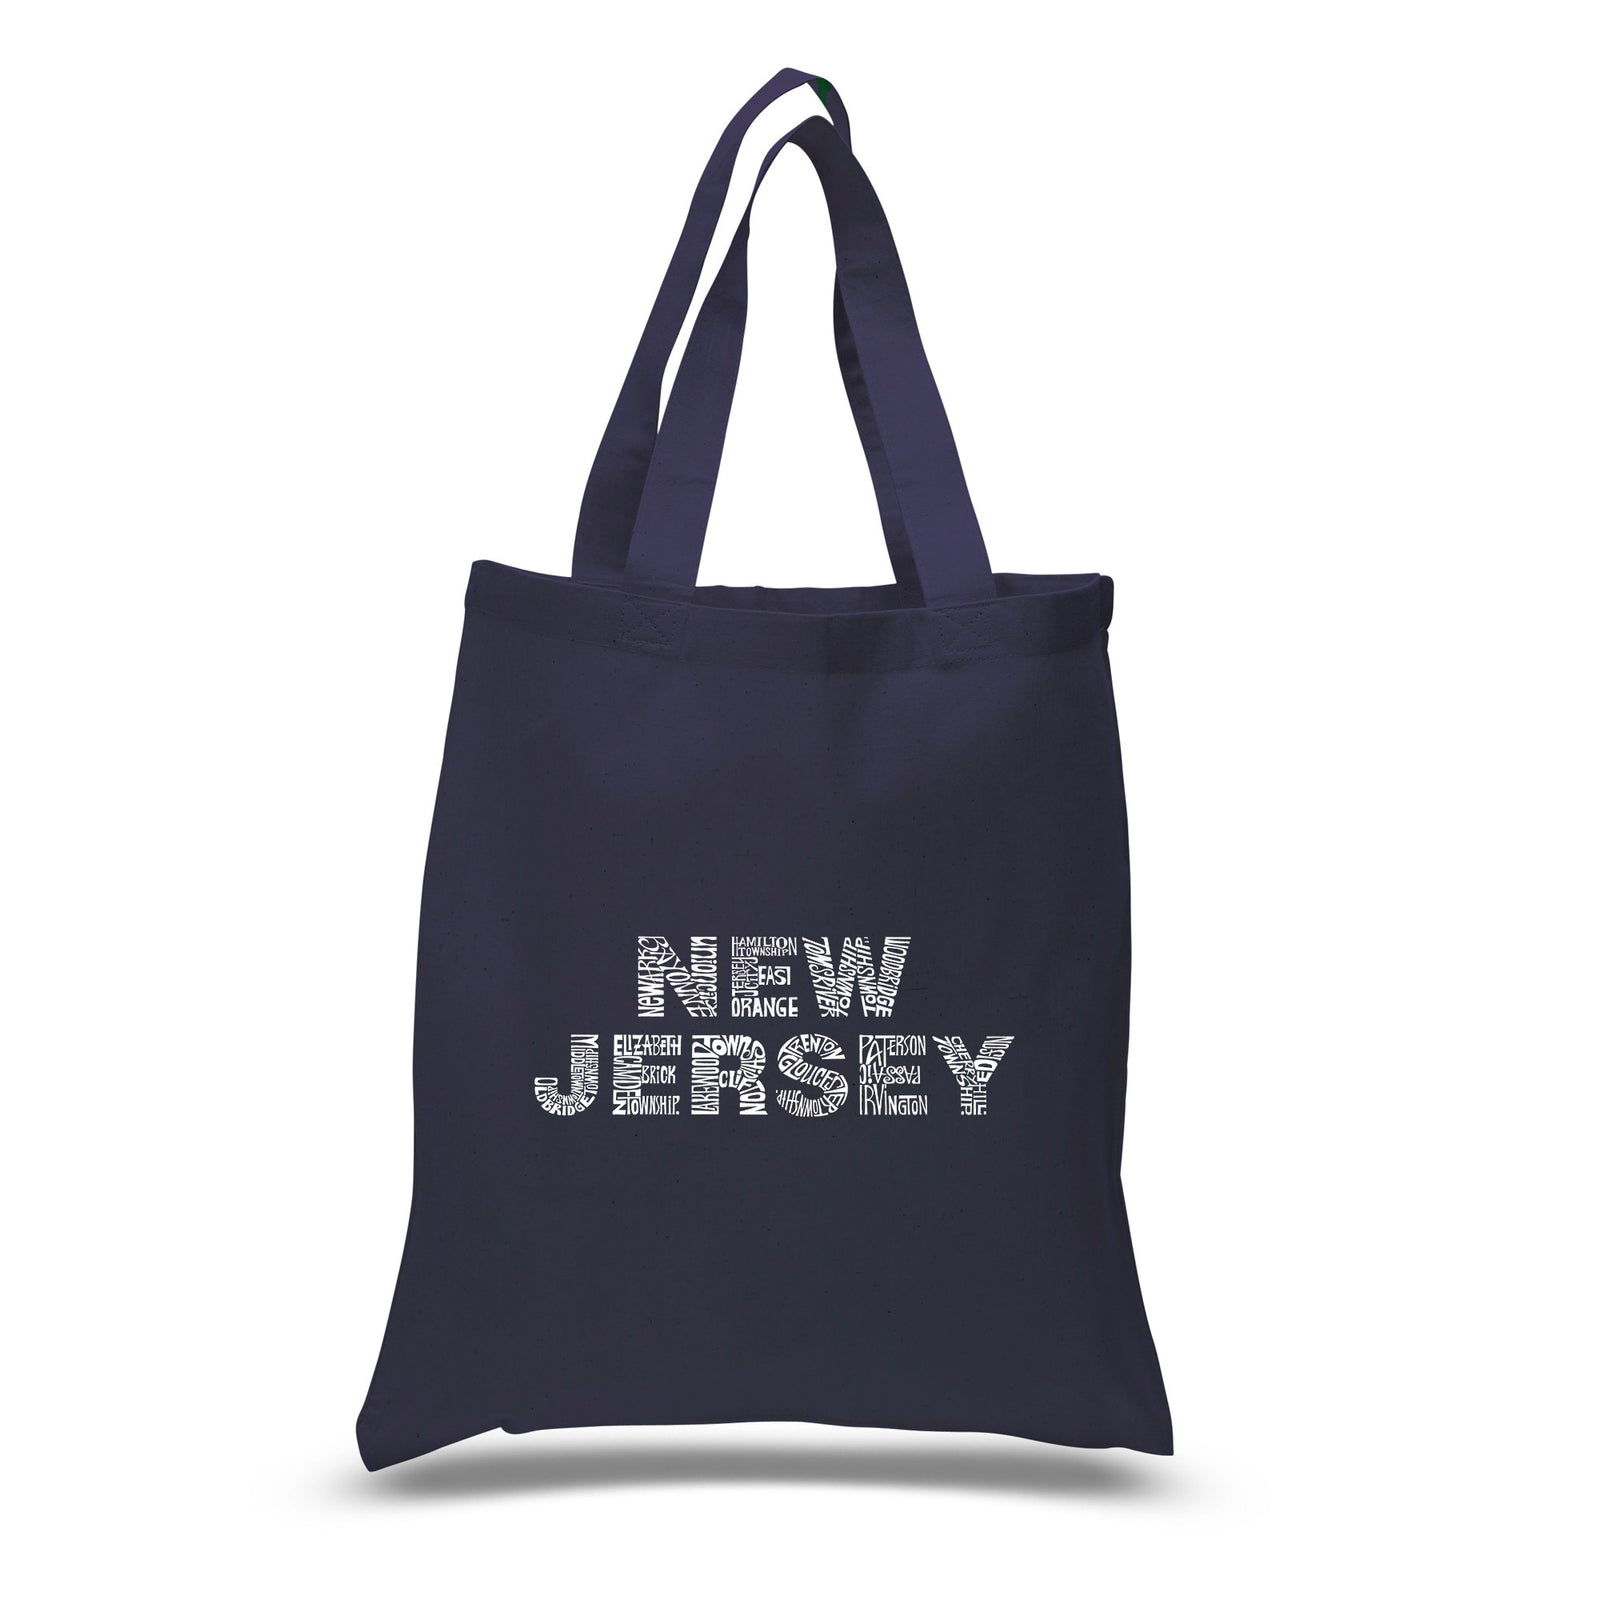 Small Tote Bag - NEW JERSEY NEIGHBORHOODS